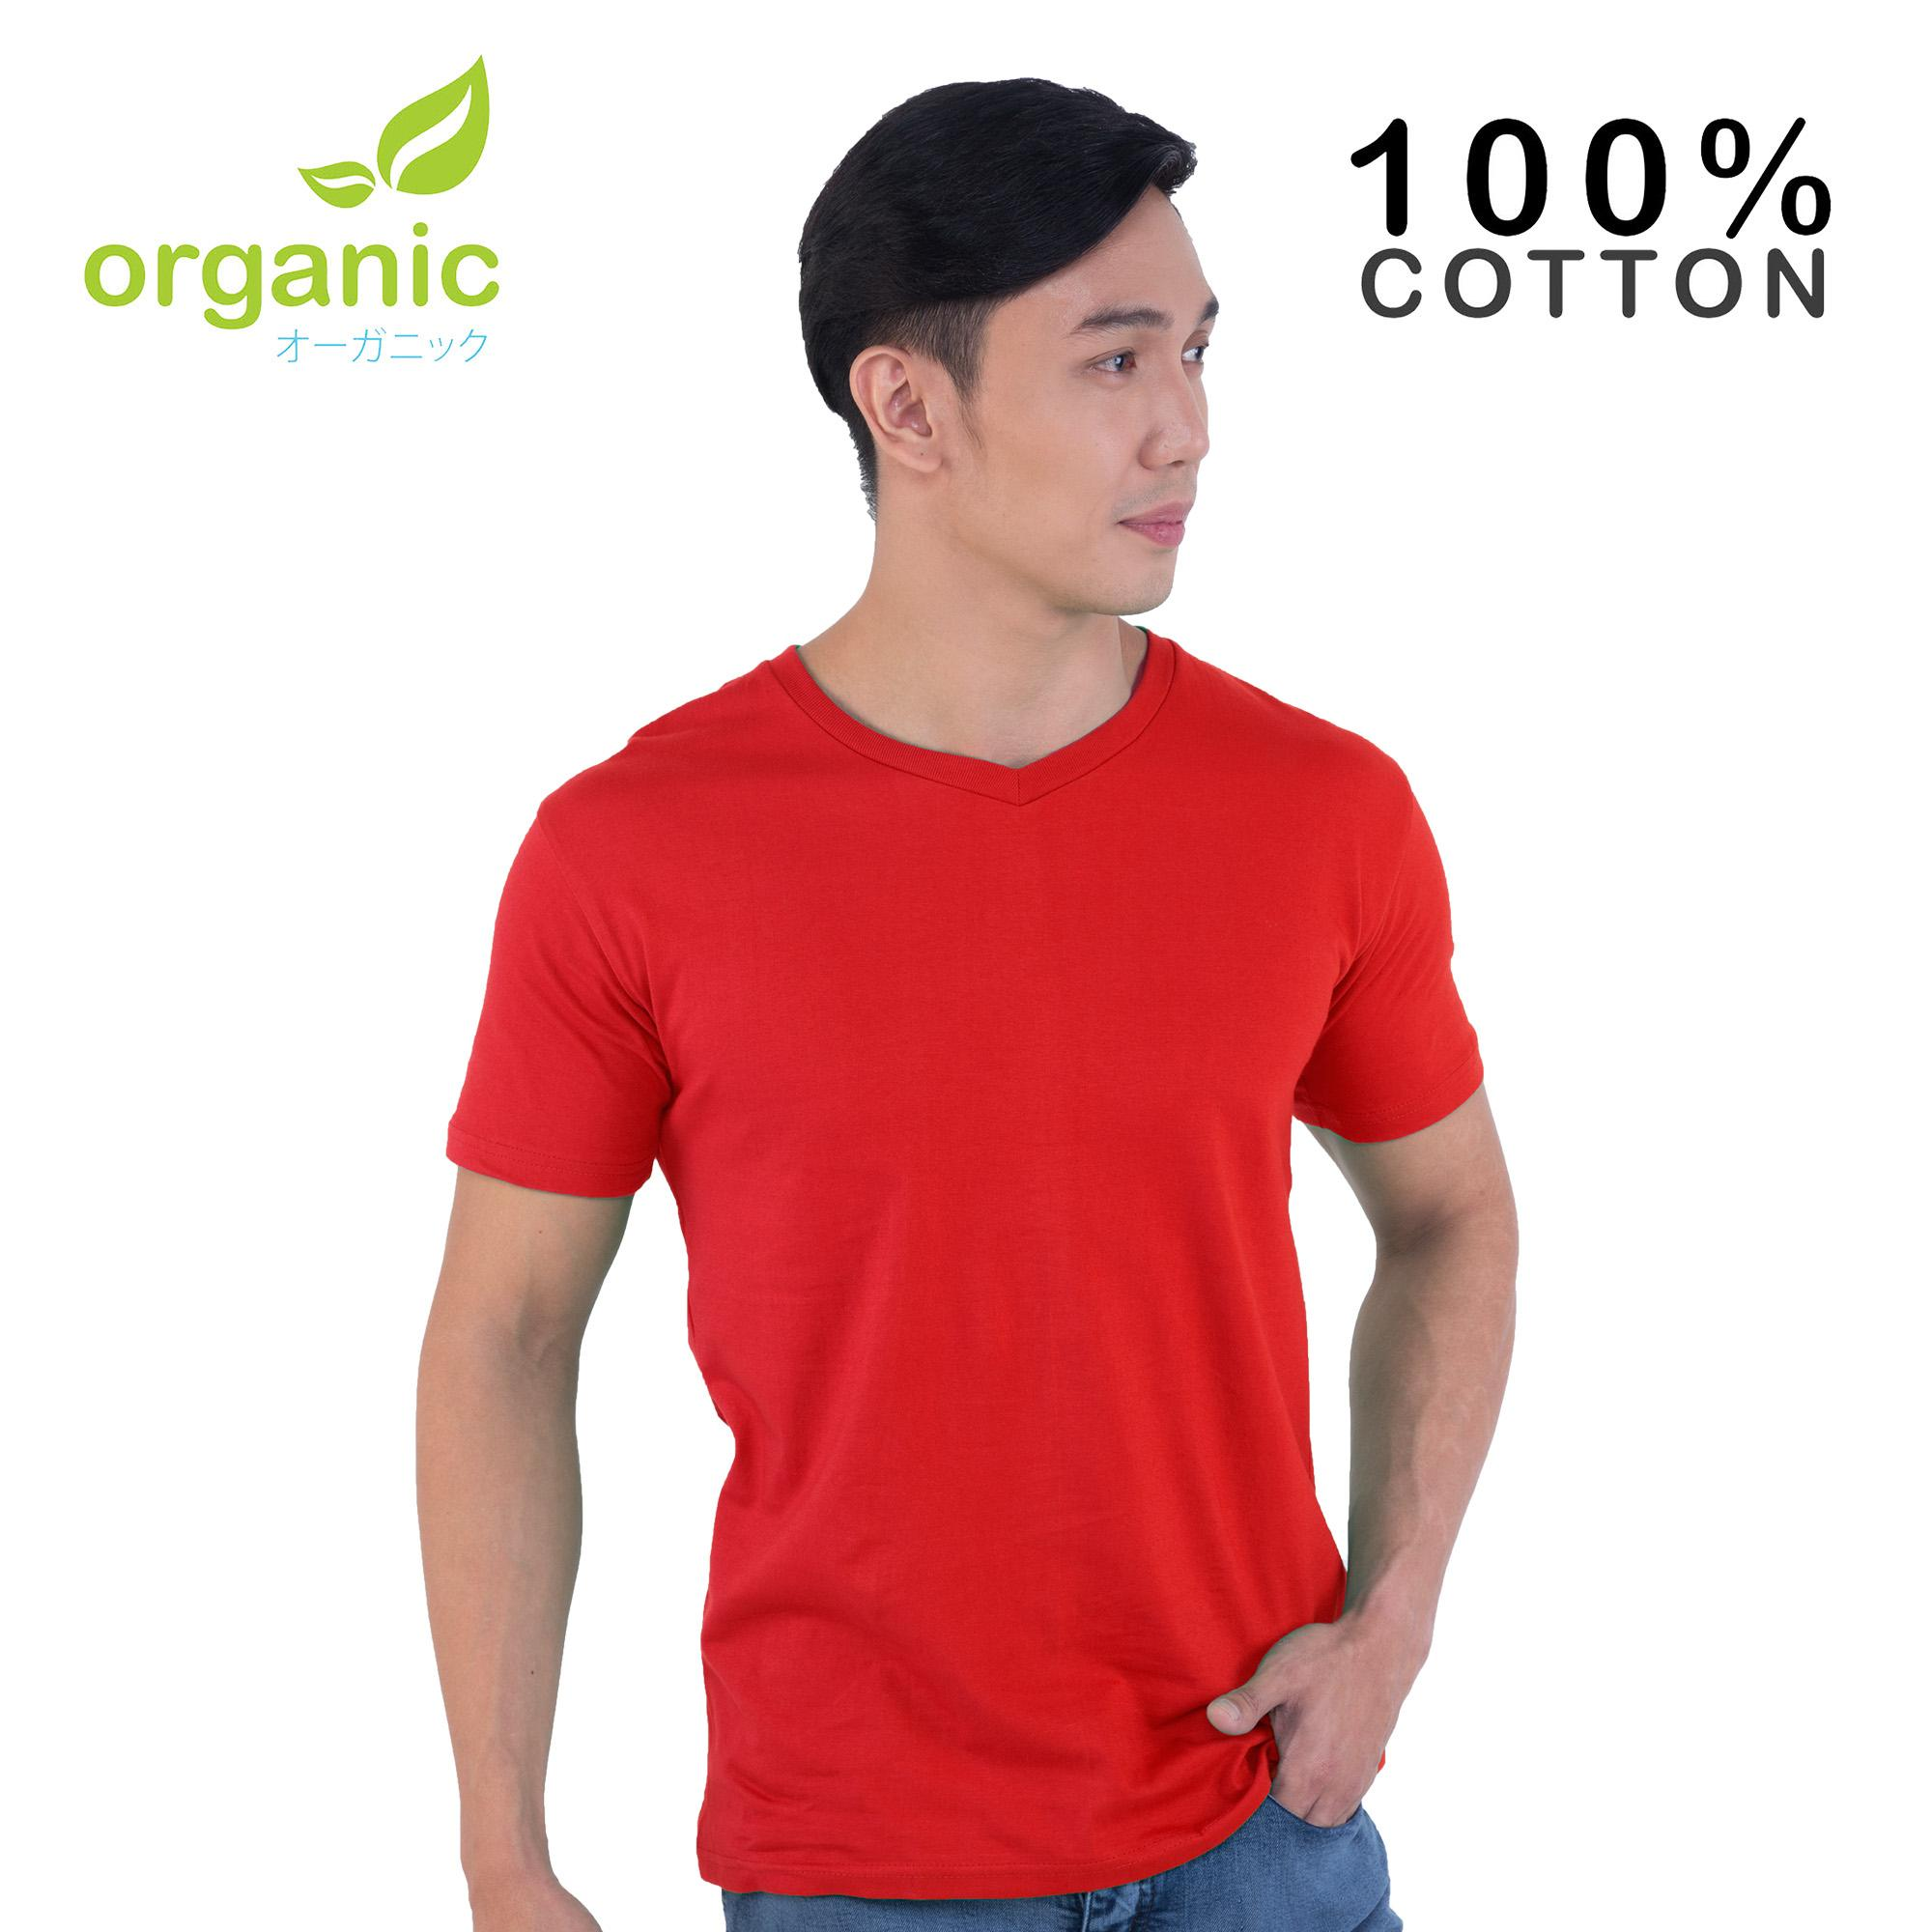 da47e7c51c T-Shirt Clothing for Men for sale - Mens Shirt Clothing Online Deals &  Prices in Philippines | Lazada.com.ph